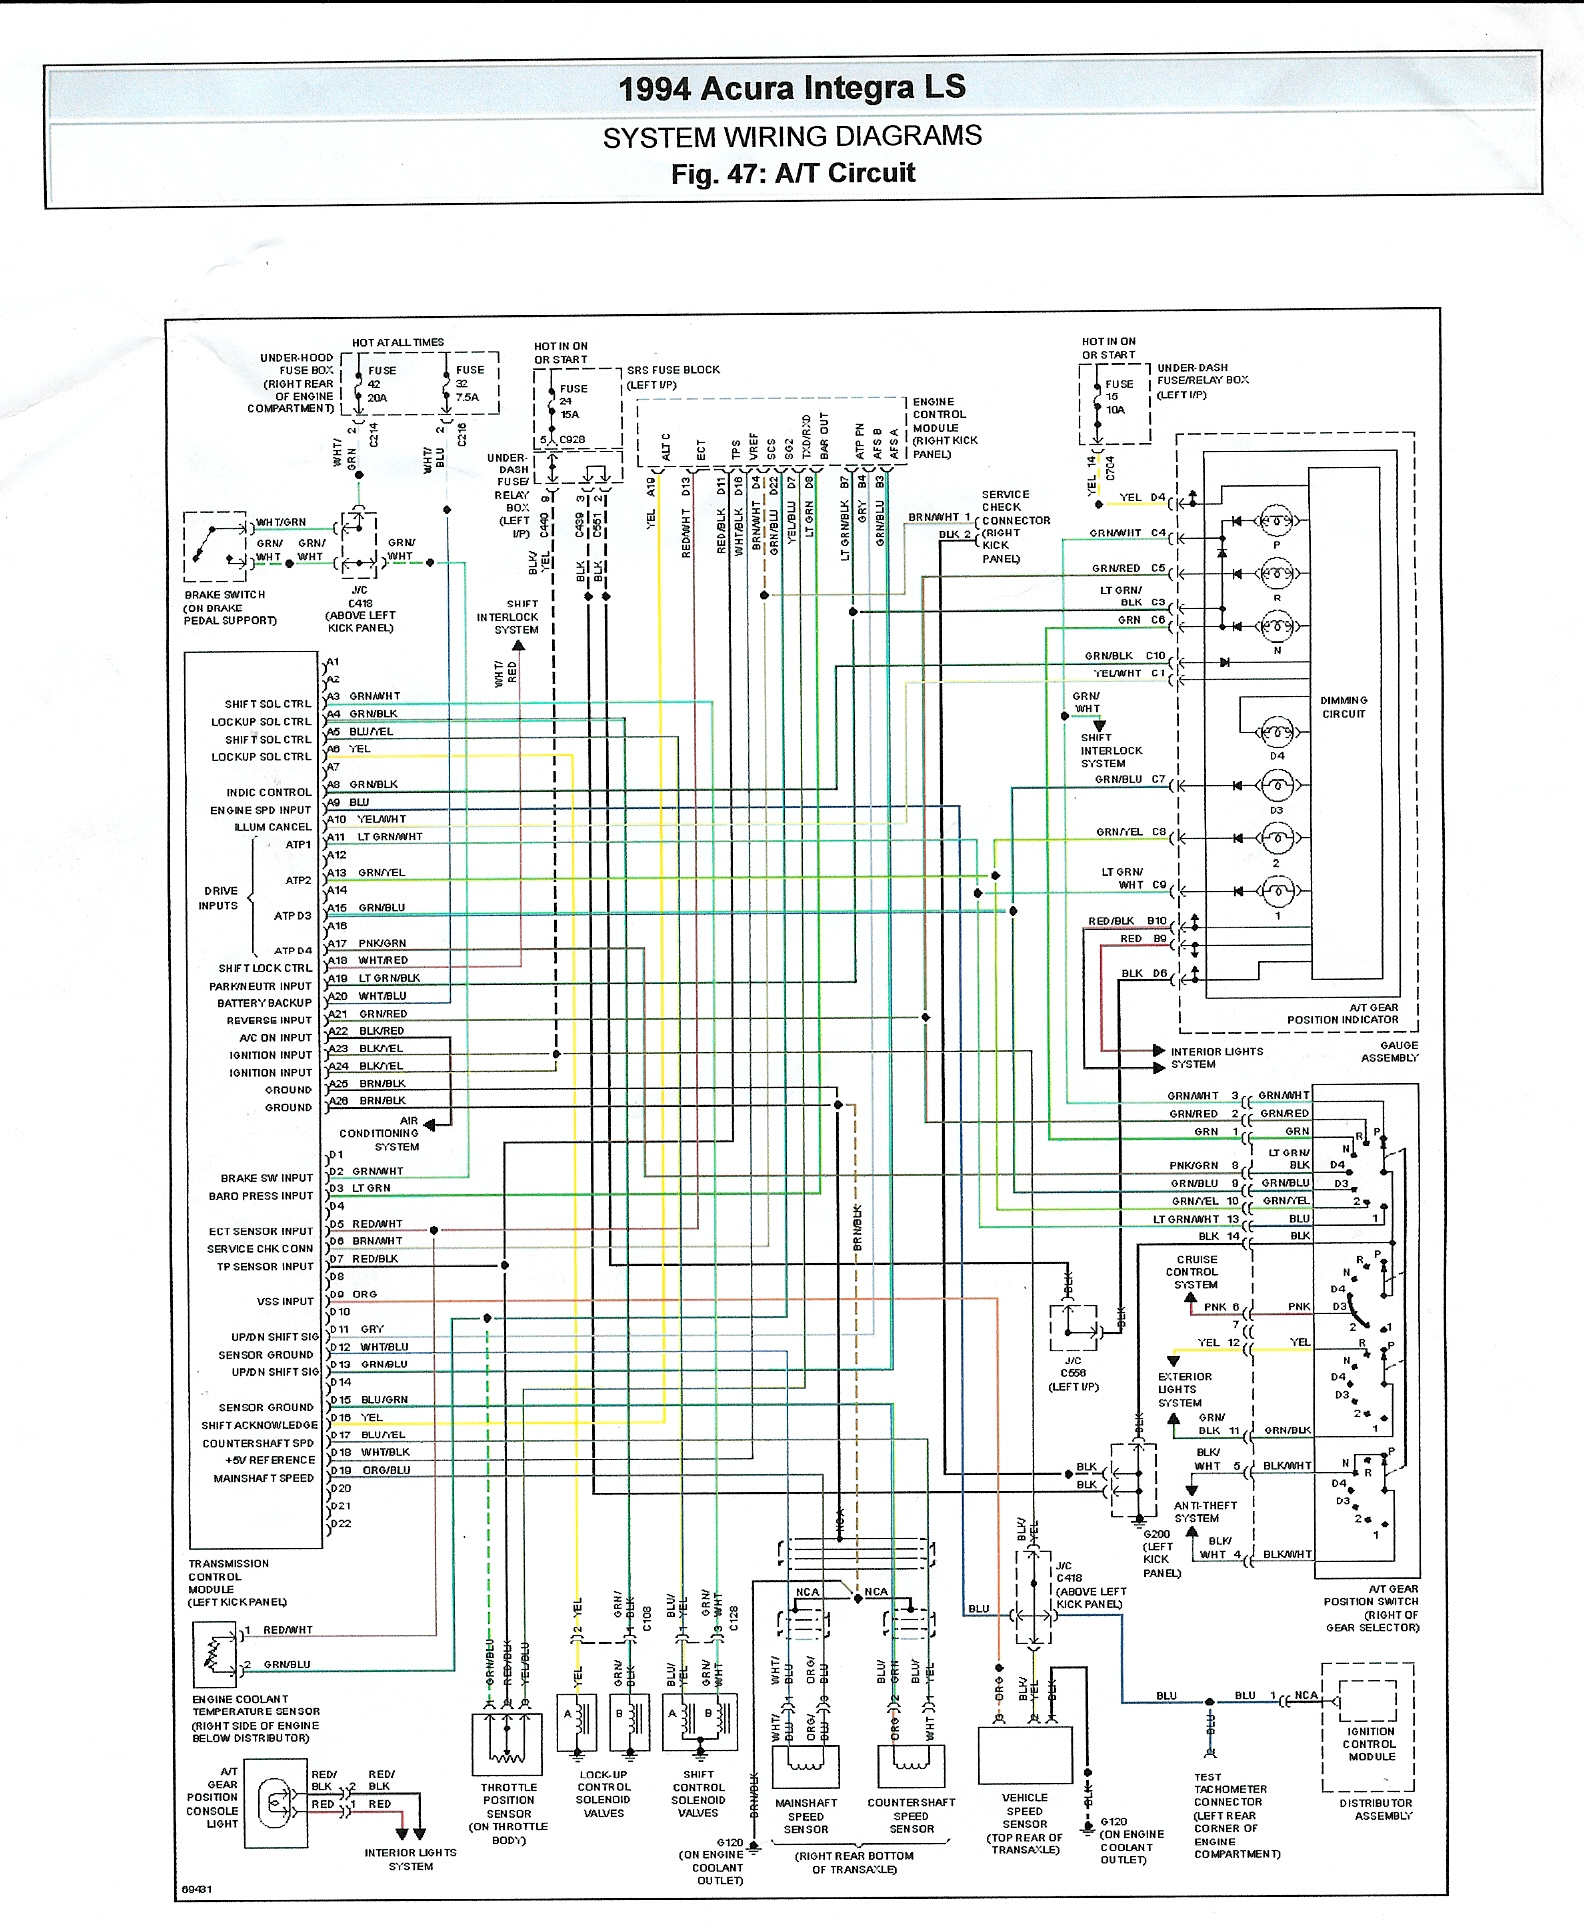 Acura Legend Ka7 Engine Diagram Electrical Wiring 1989 Schematic Diagrams 1994 Vacuum 1991 Integra Stereo